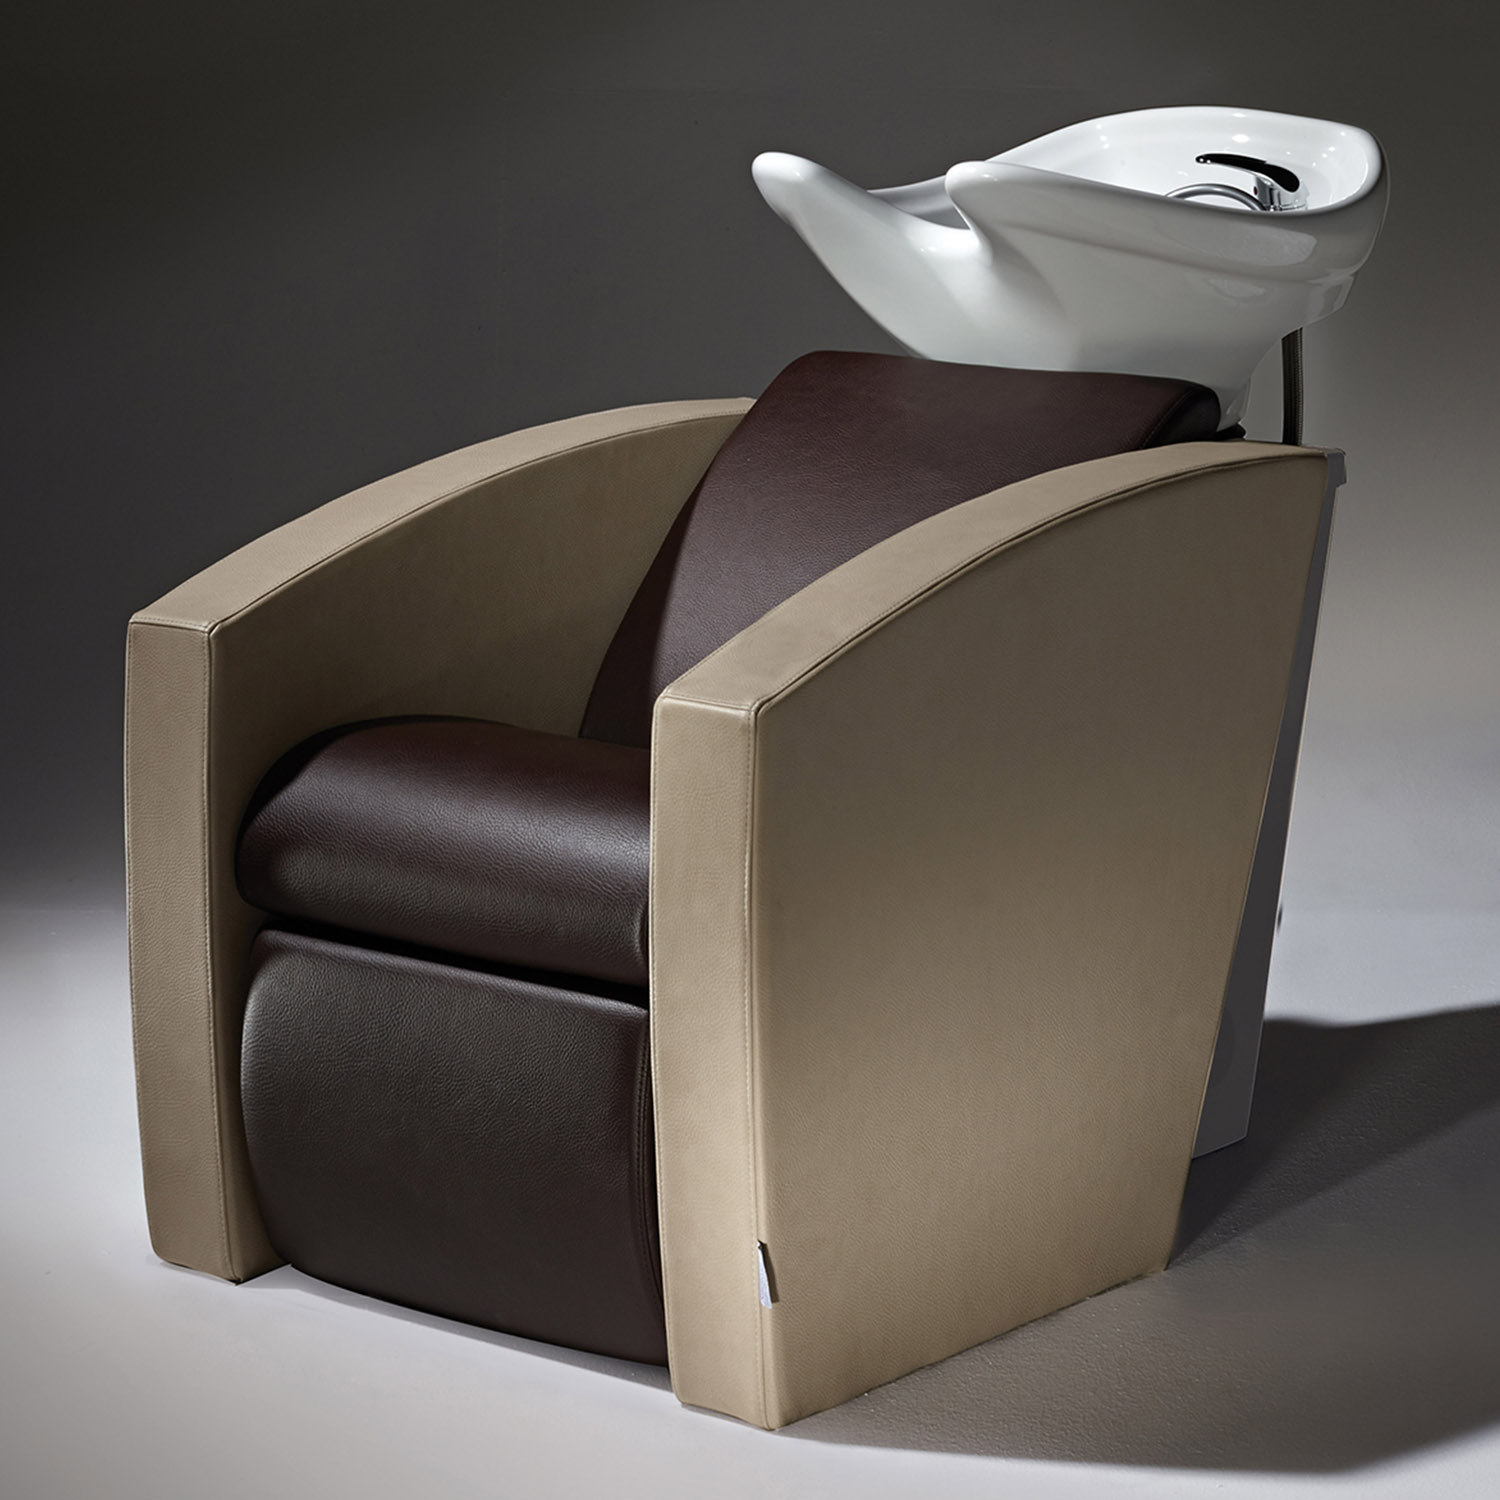 Mirage Shampoo Bowl with Chair by Salon Ambience alternative product image 1